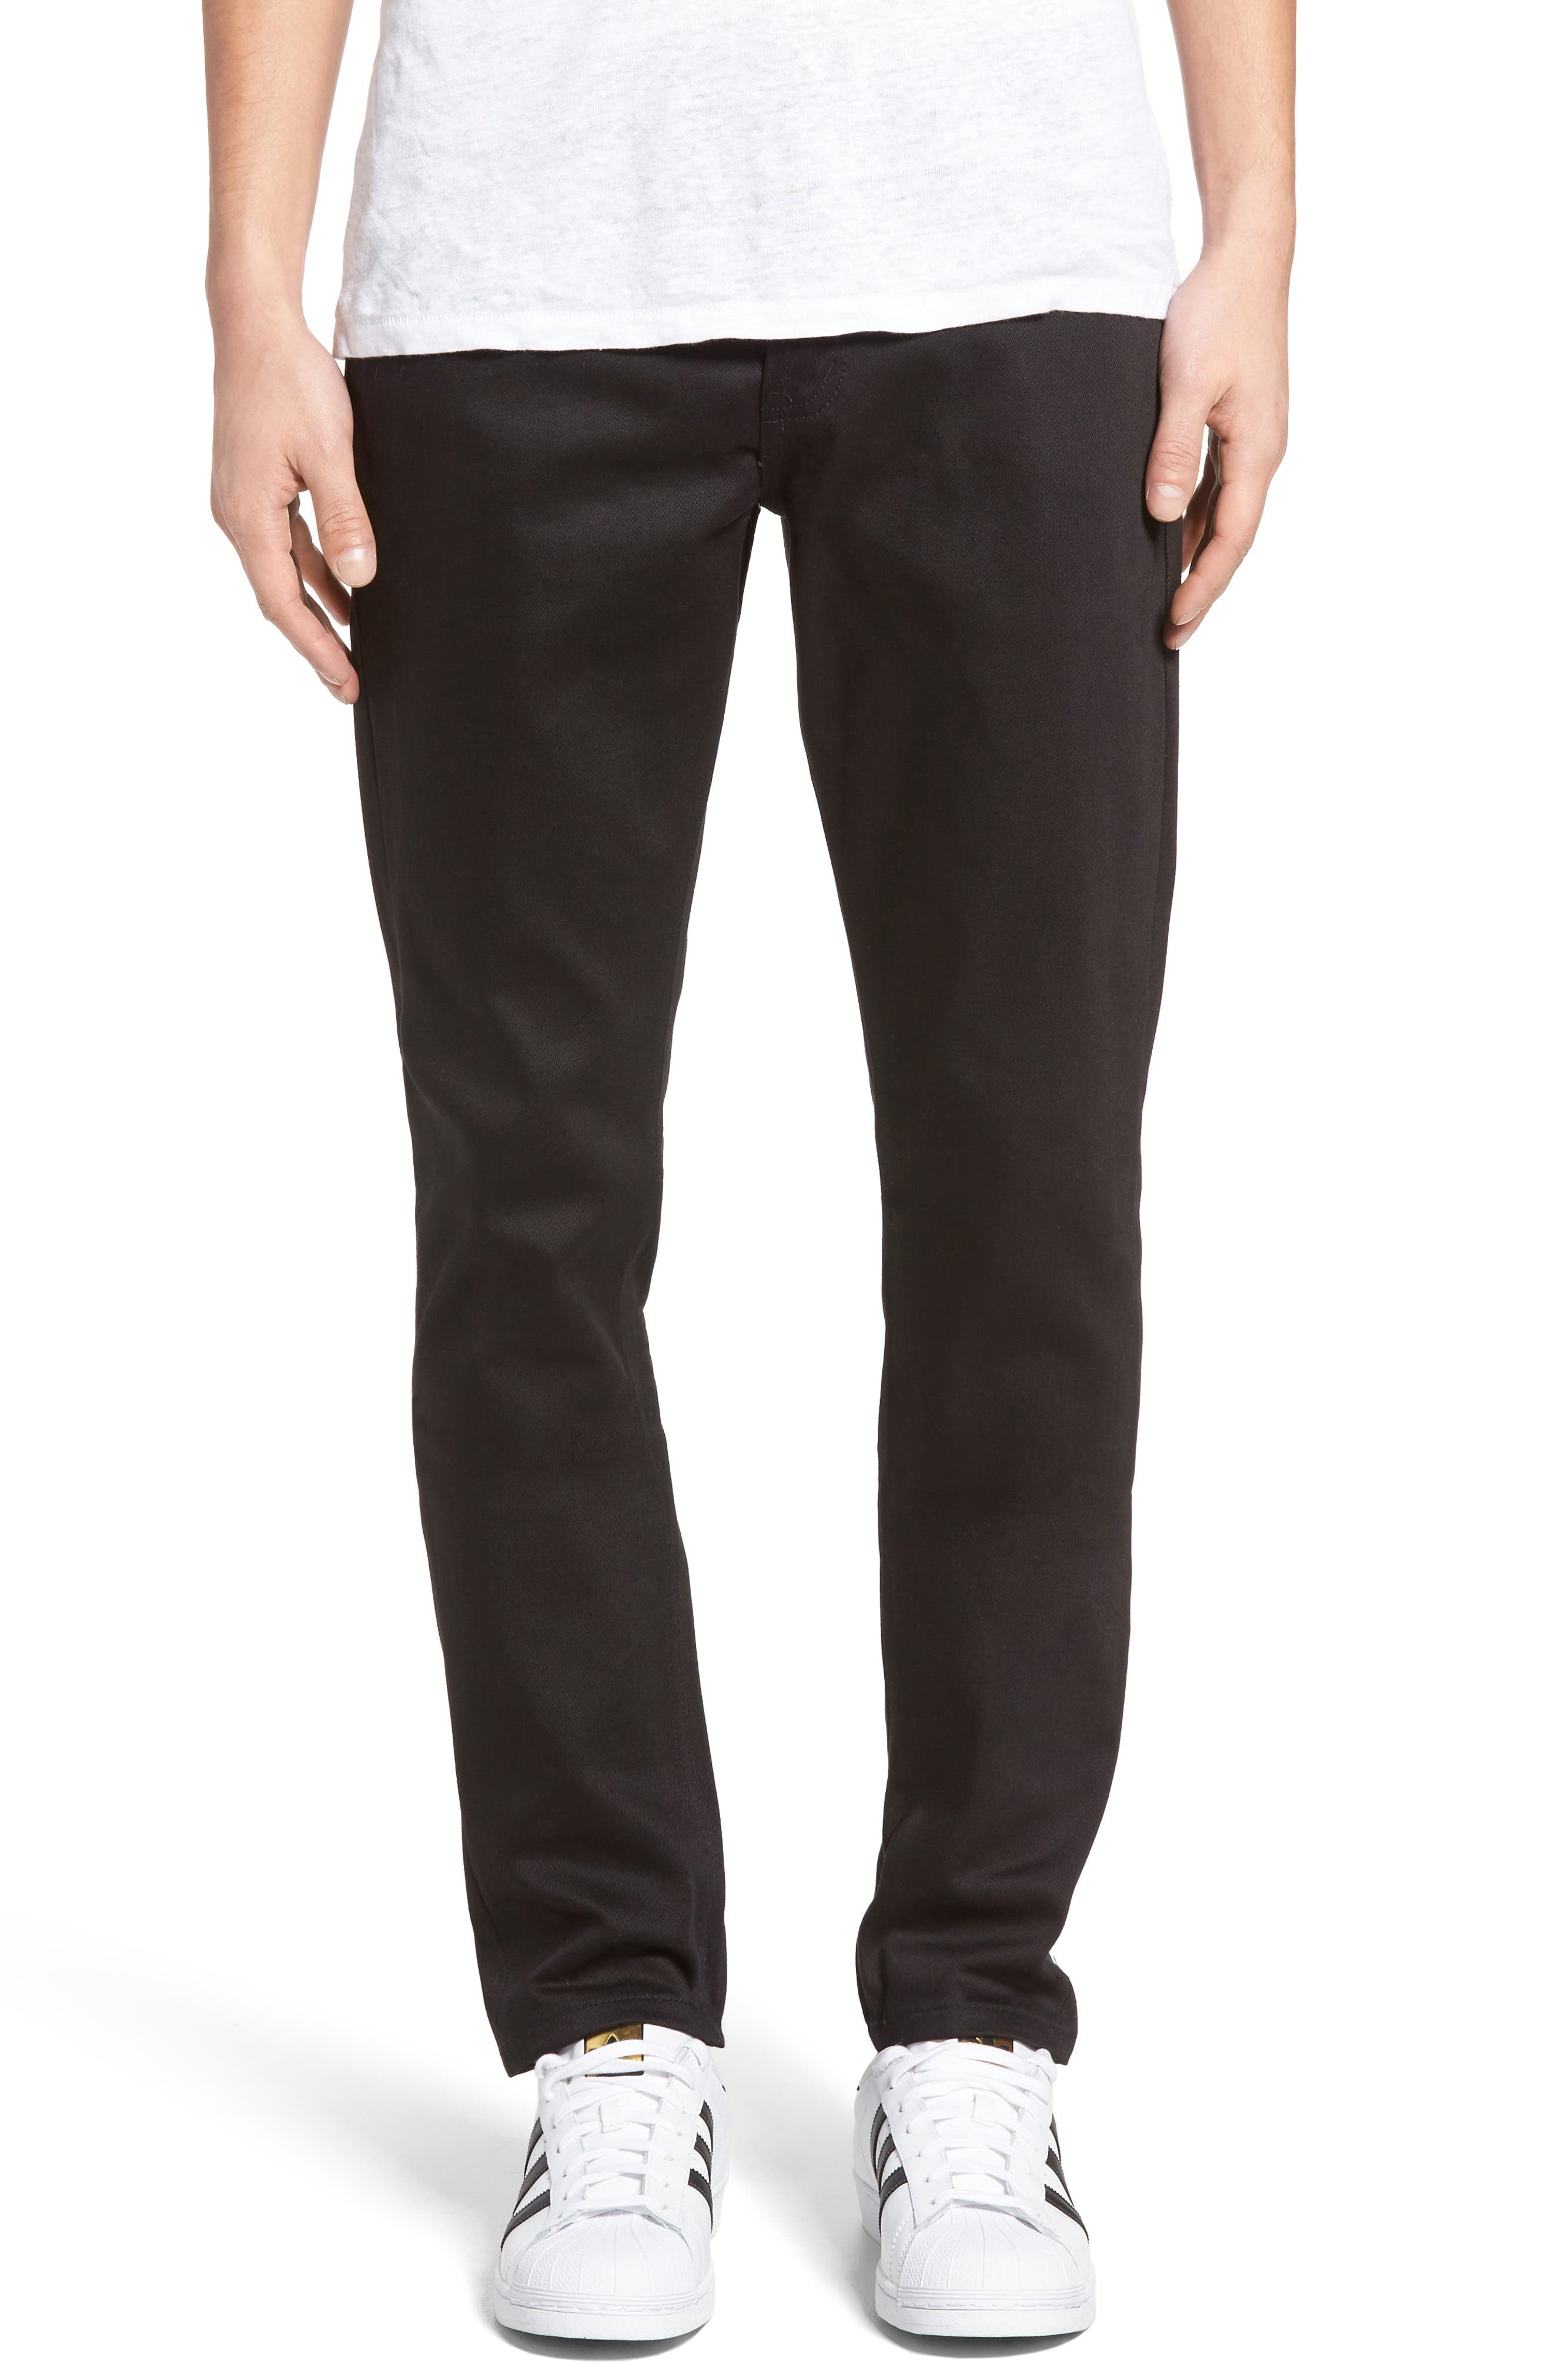 UB455 Selvedge Skinny Fit Jeans,                             Alternate thumbnail 2, color,                             001